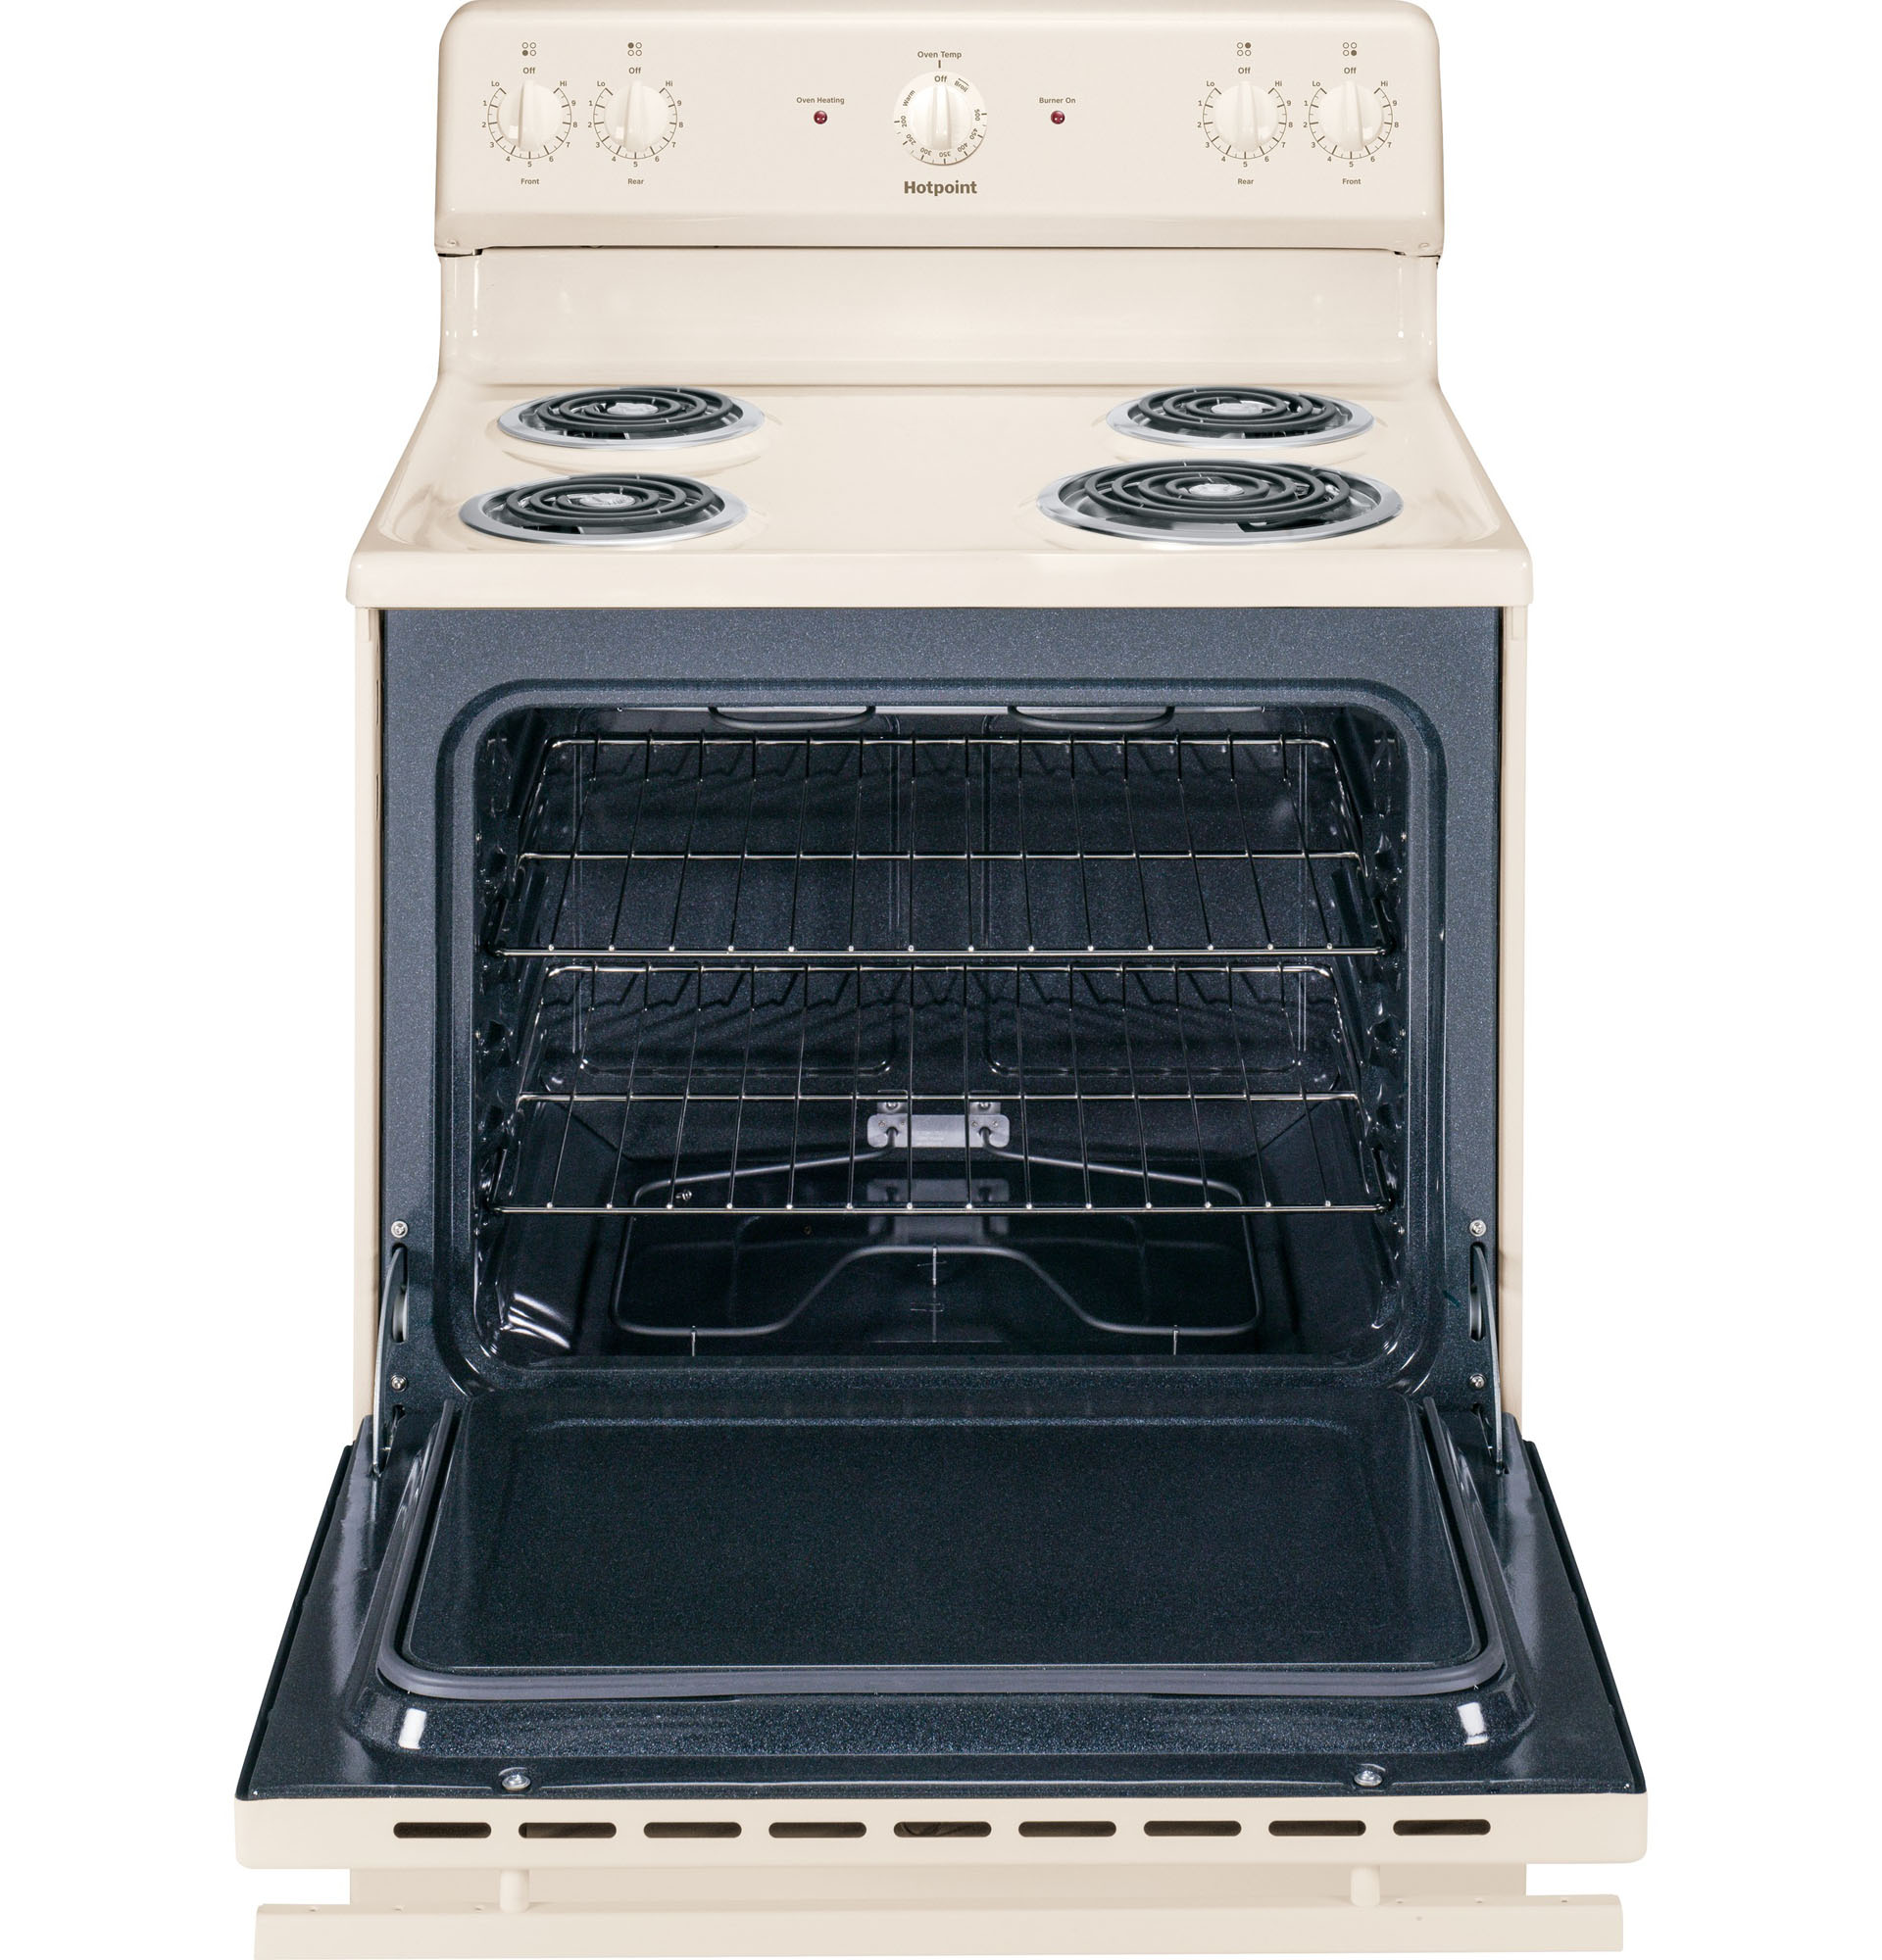 Hotpoint RB525DHCC 5.0 cu. ft. Freestanding Electric Range - Bisque